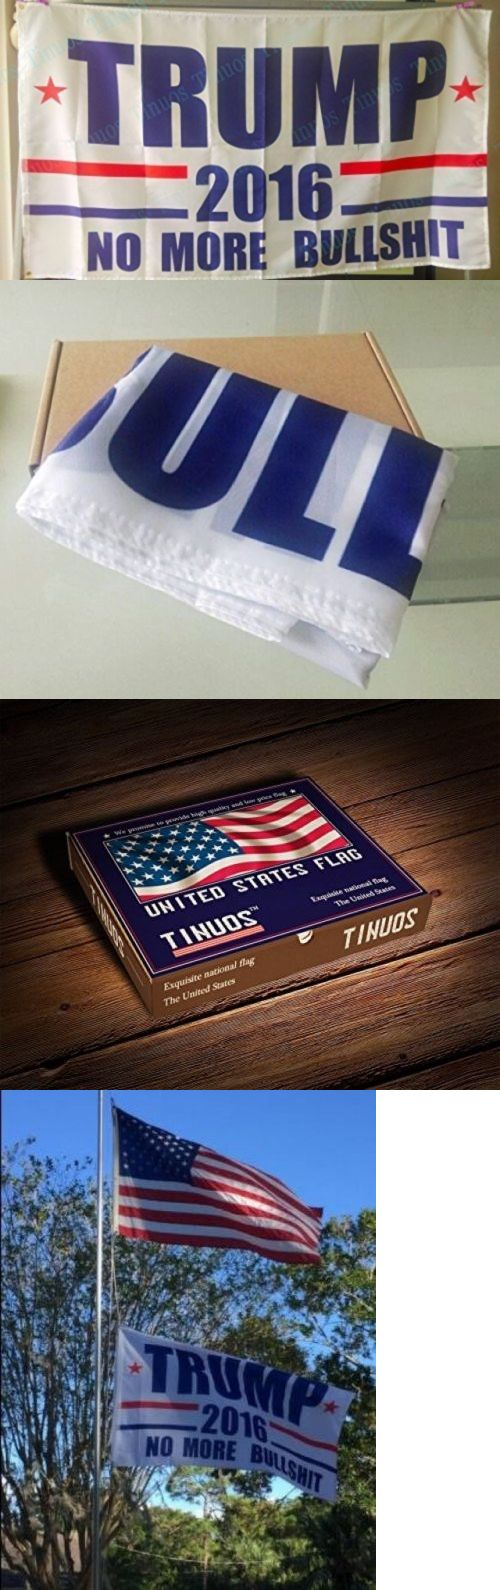 donald trump: President Donald Trump Flag No More Bullshit Make America Great Again Flags -> BUY IT NOW ONLY: $13.38 on eBay!